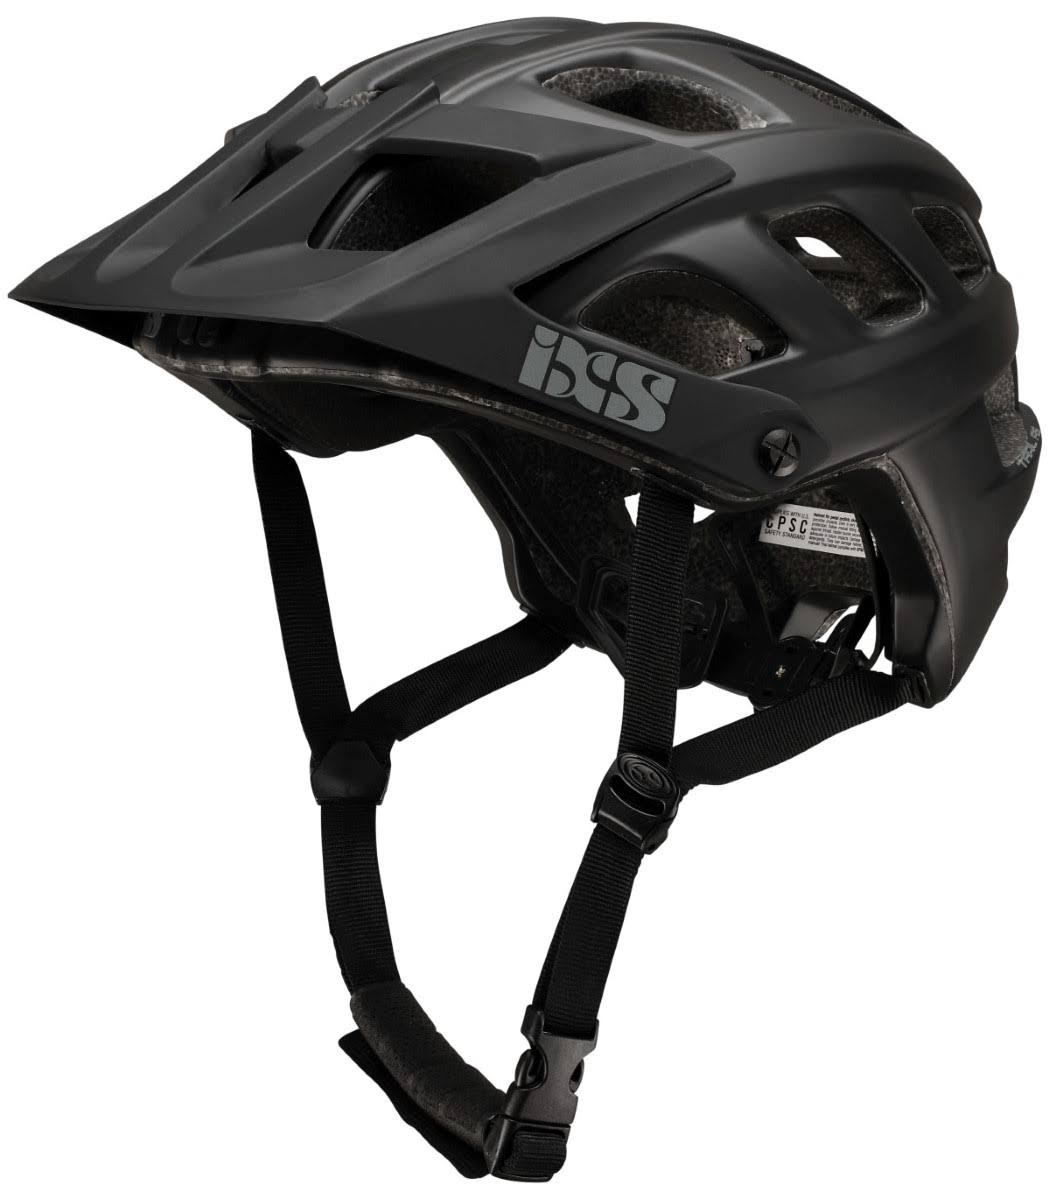 IXS Trail RS Evo Bike Helmet - Black, X-Large, 58-62cm